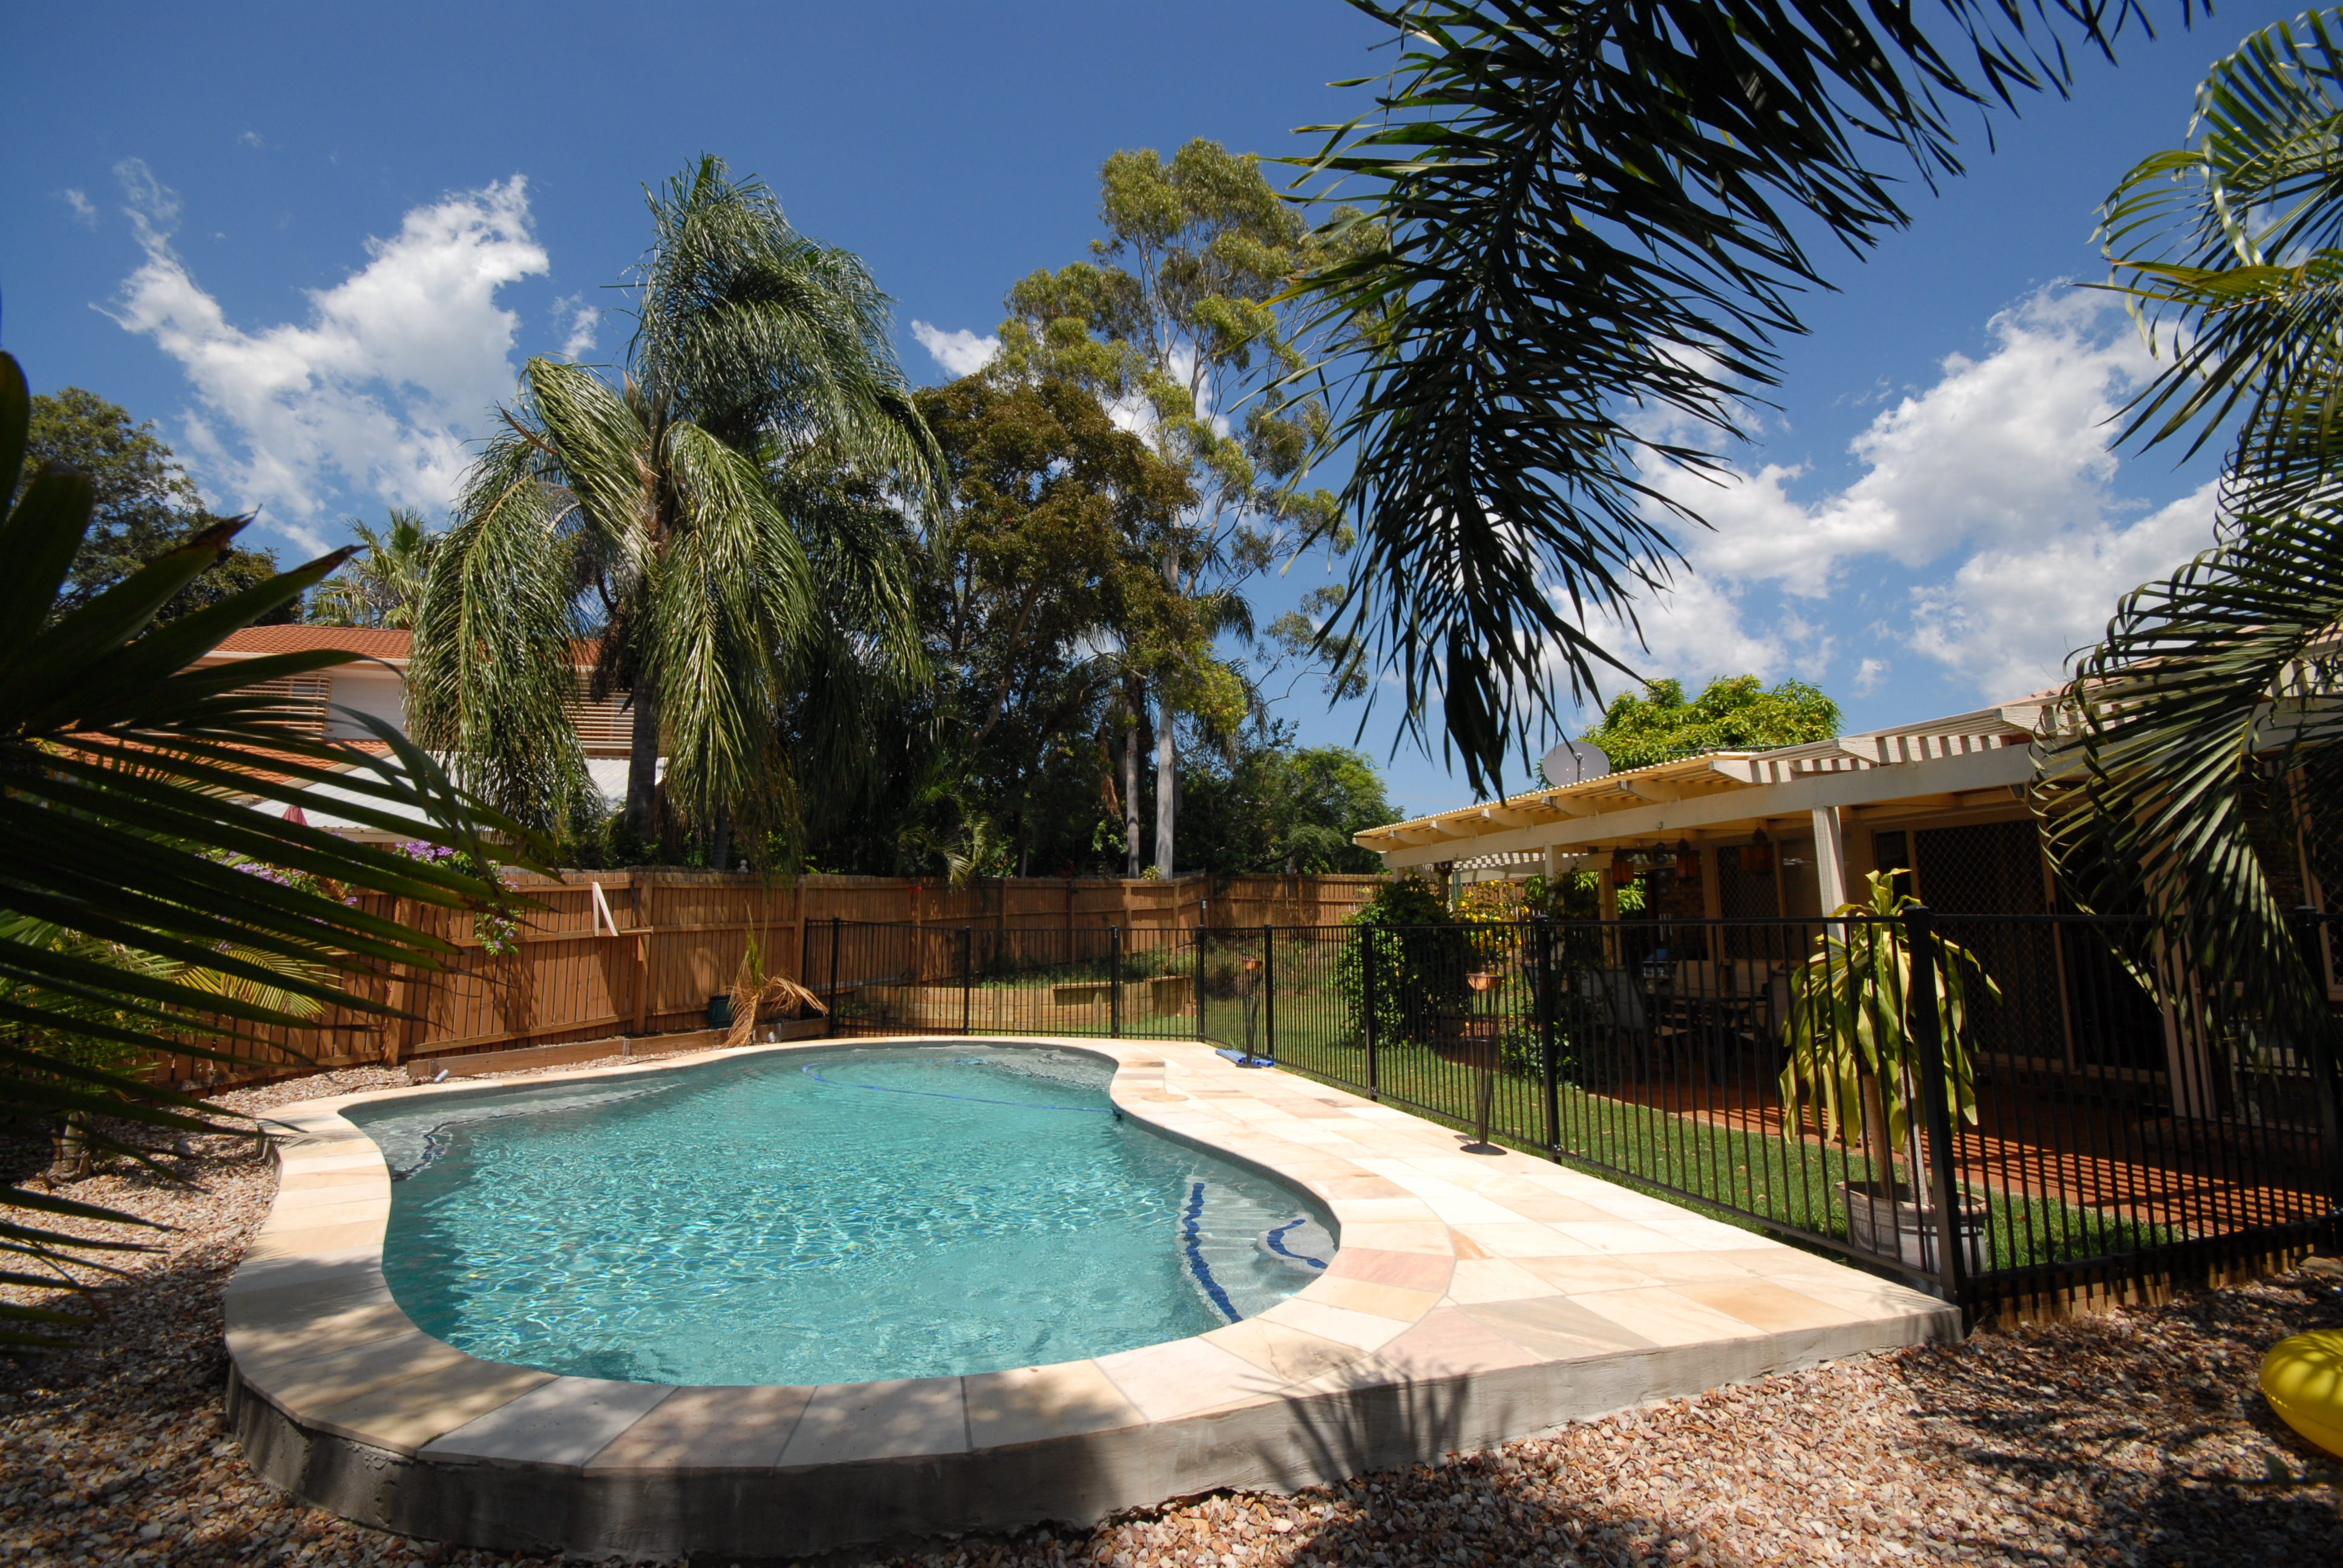 Recommendations for a pool builder in brisbane british for Pool show brisbane